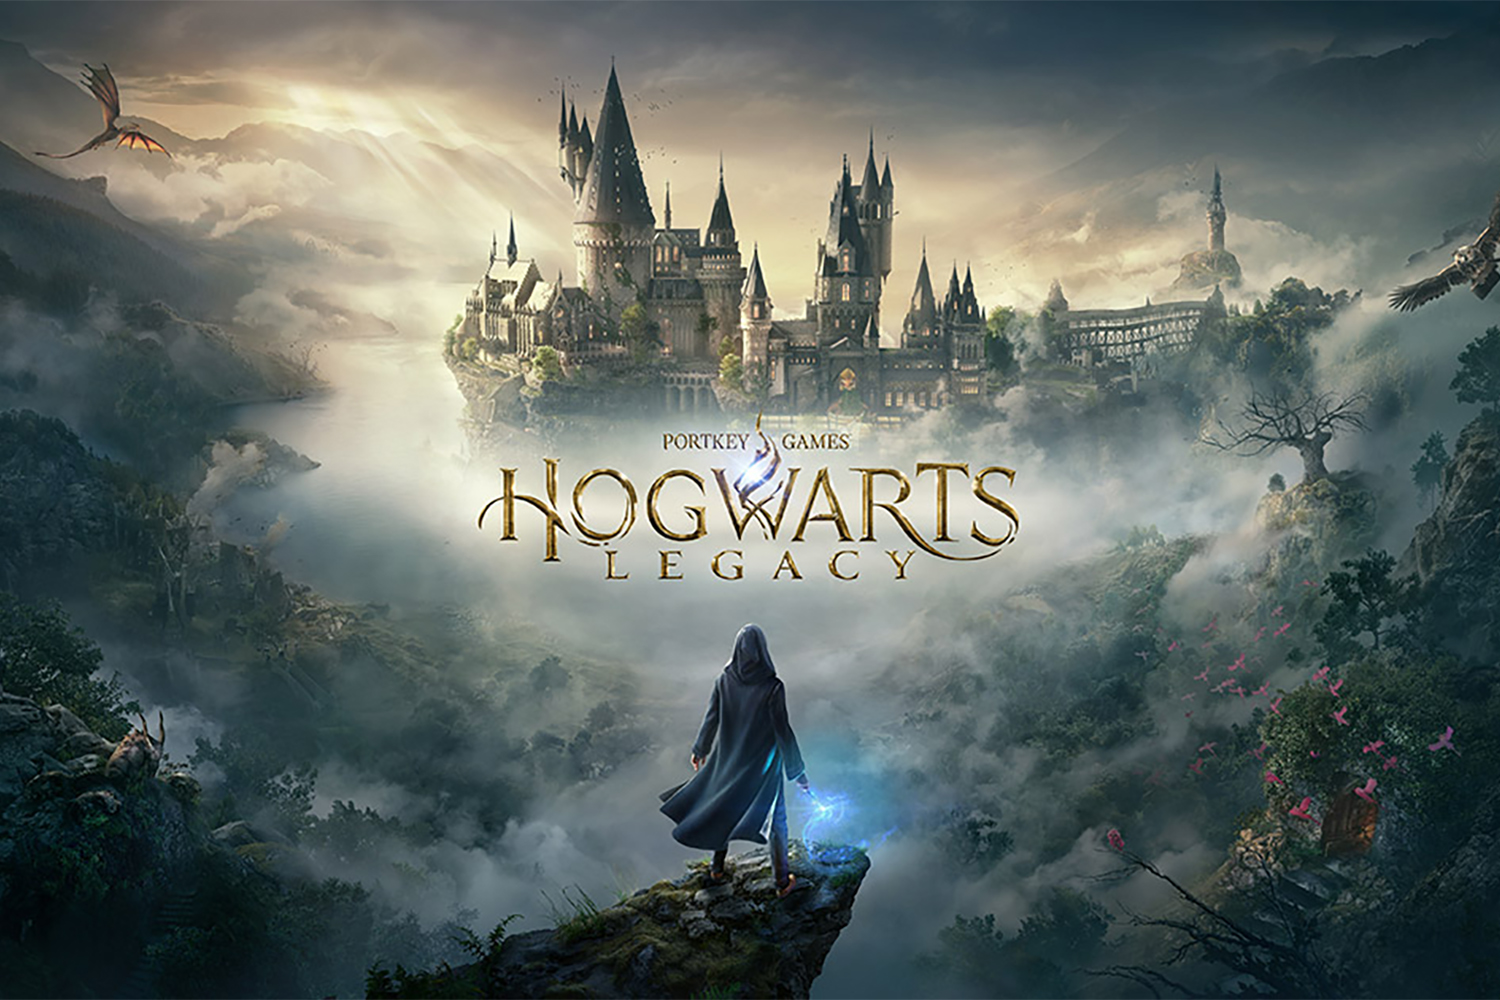 Hogwarts Legacy is an upcoming open-world action RPG